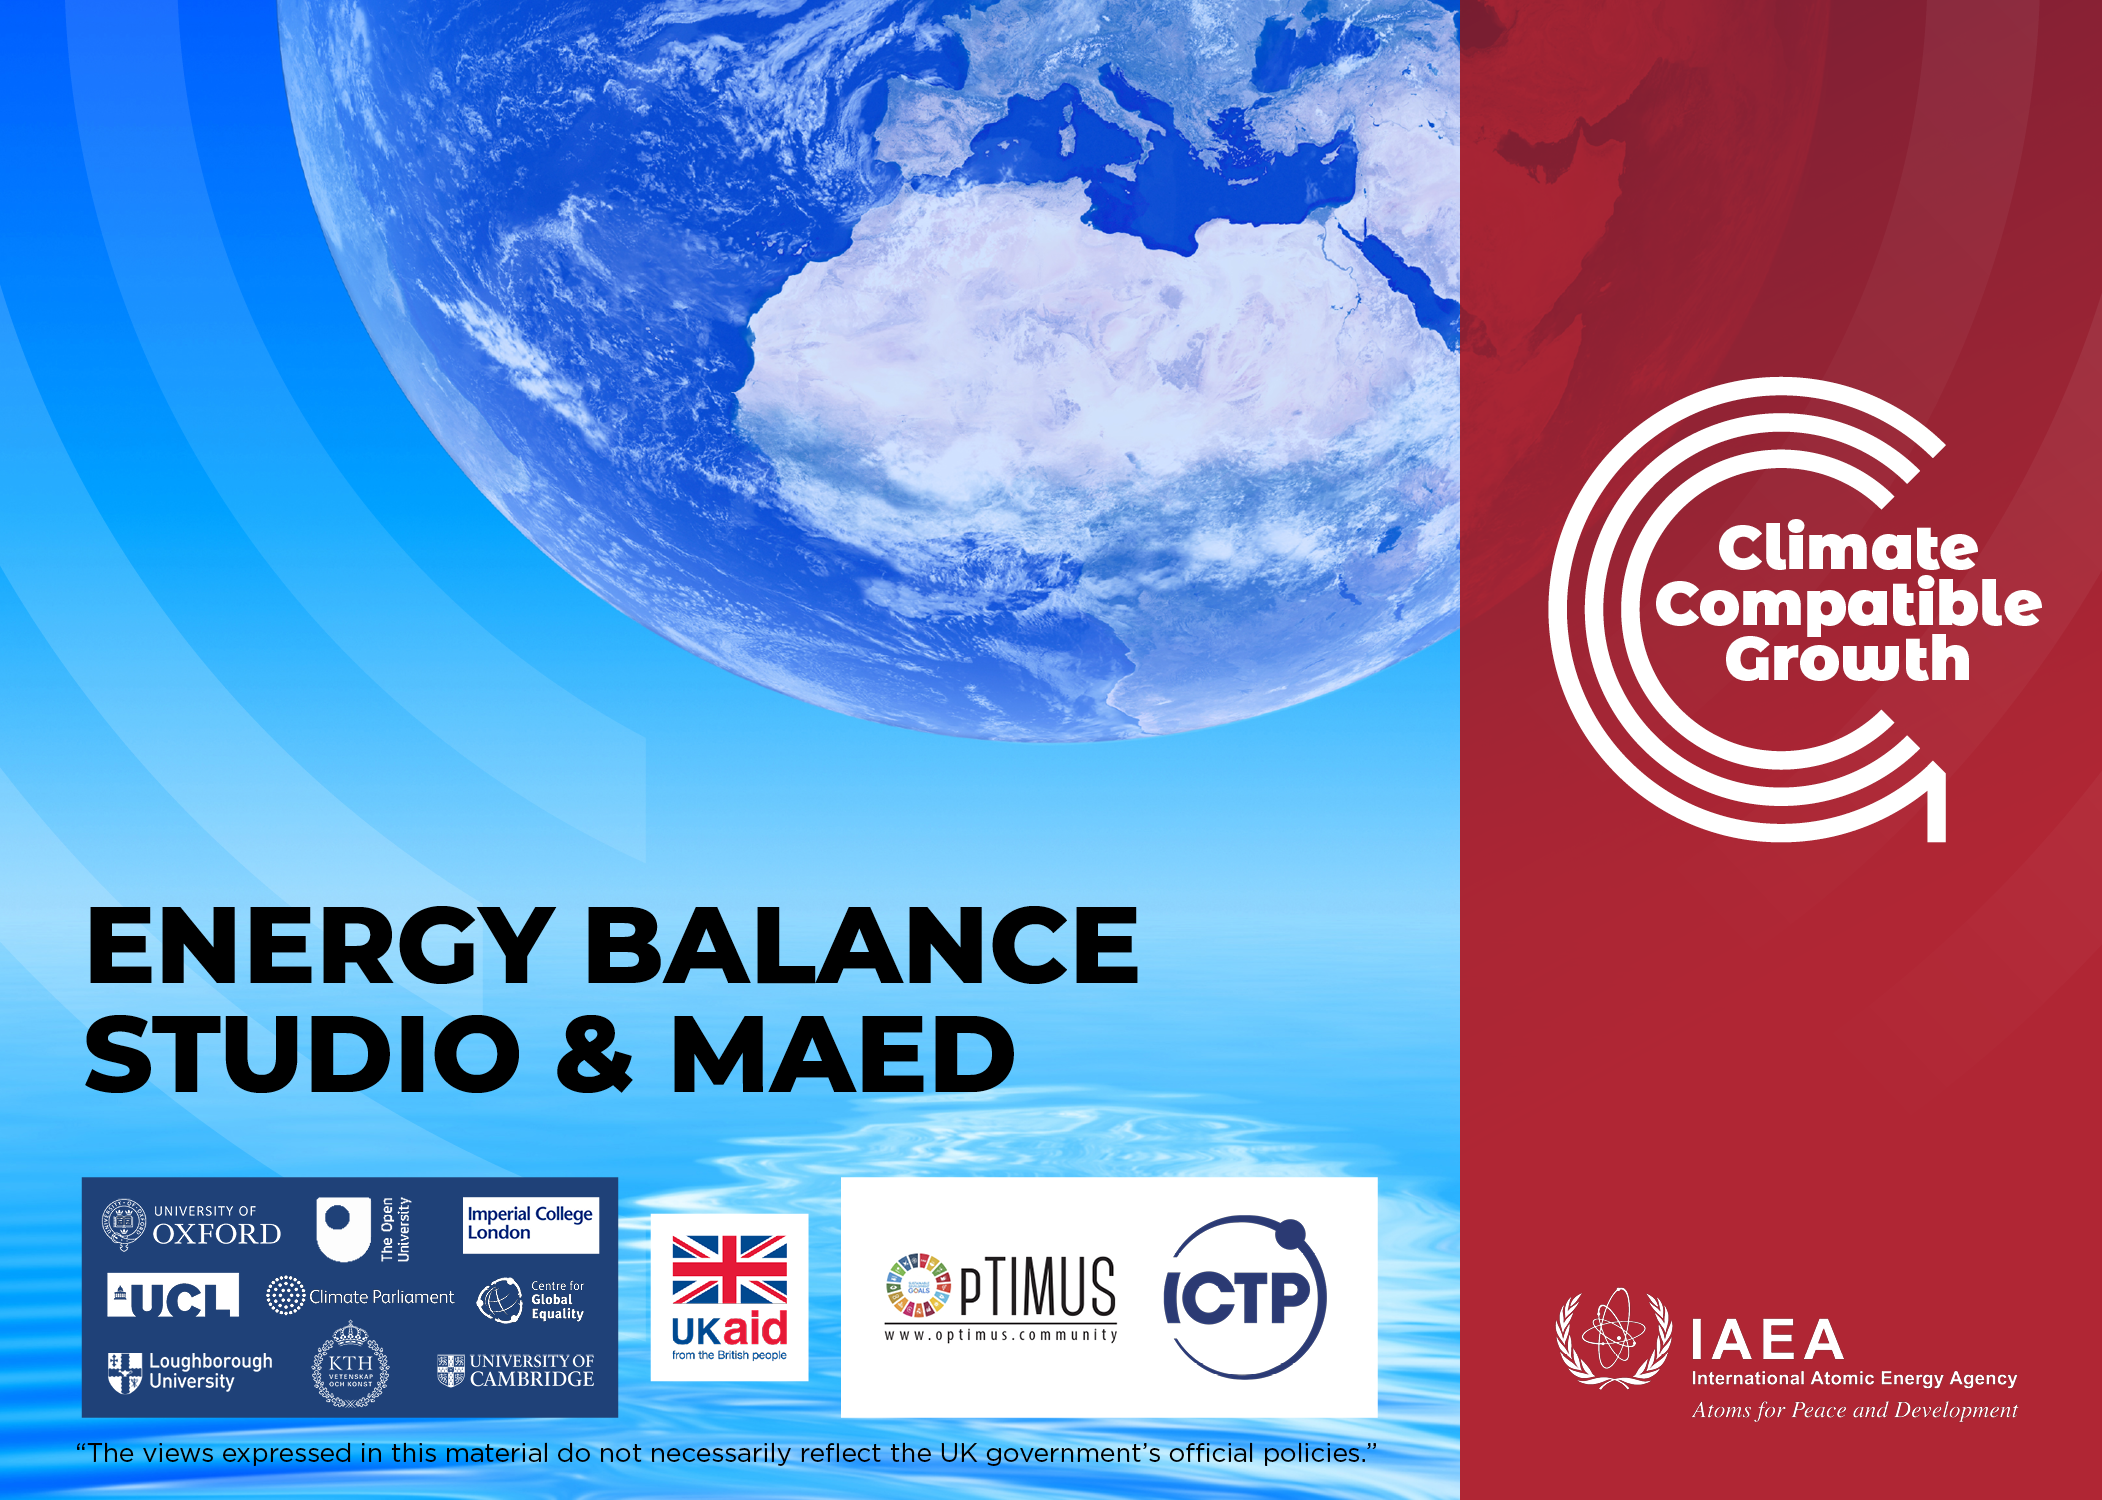 Energy Balance Studio and MAED (demand projections)